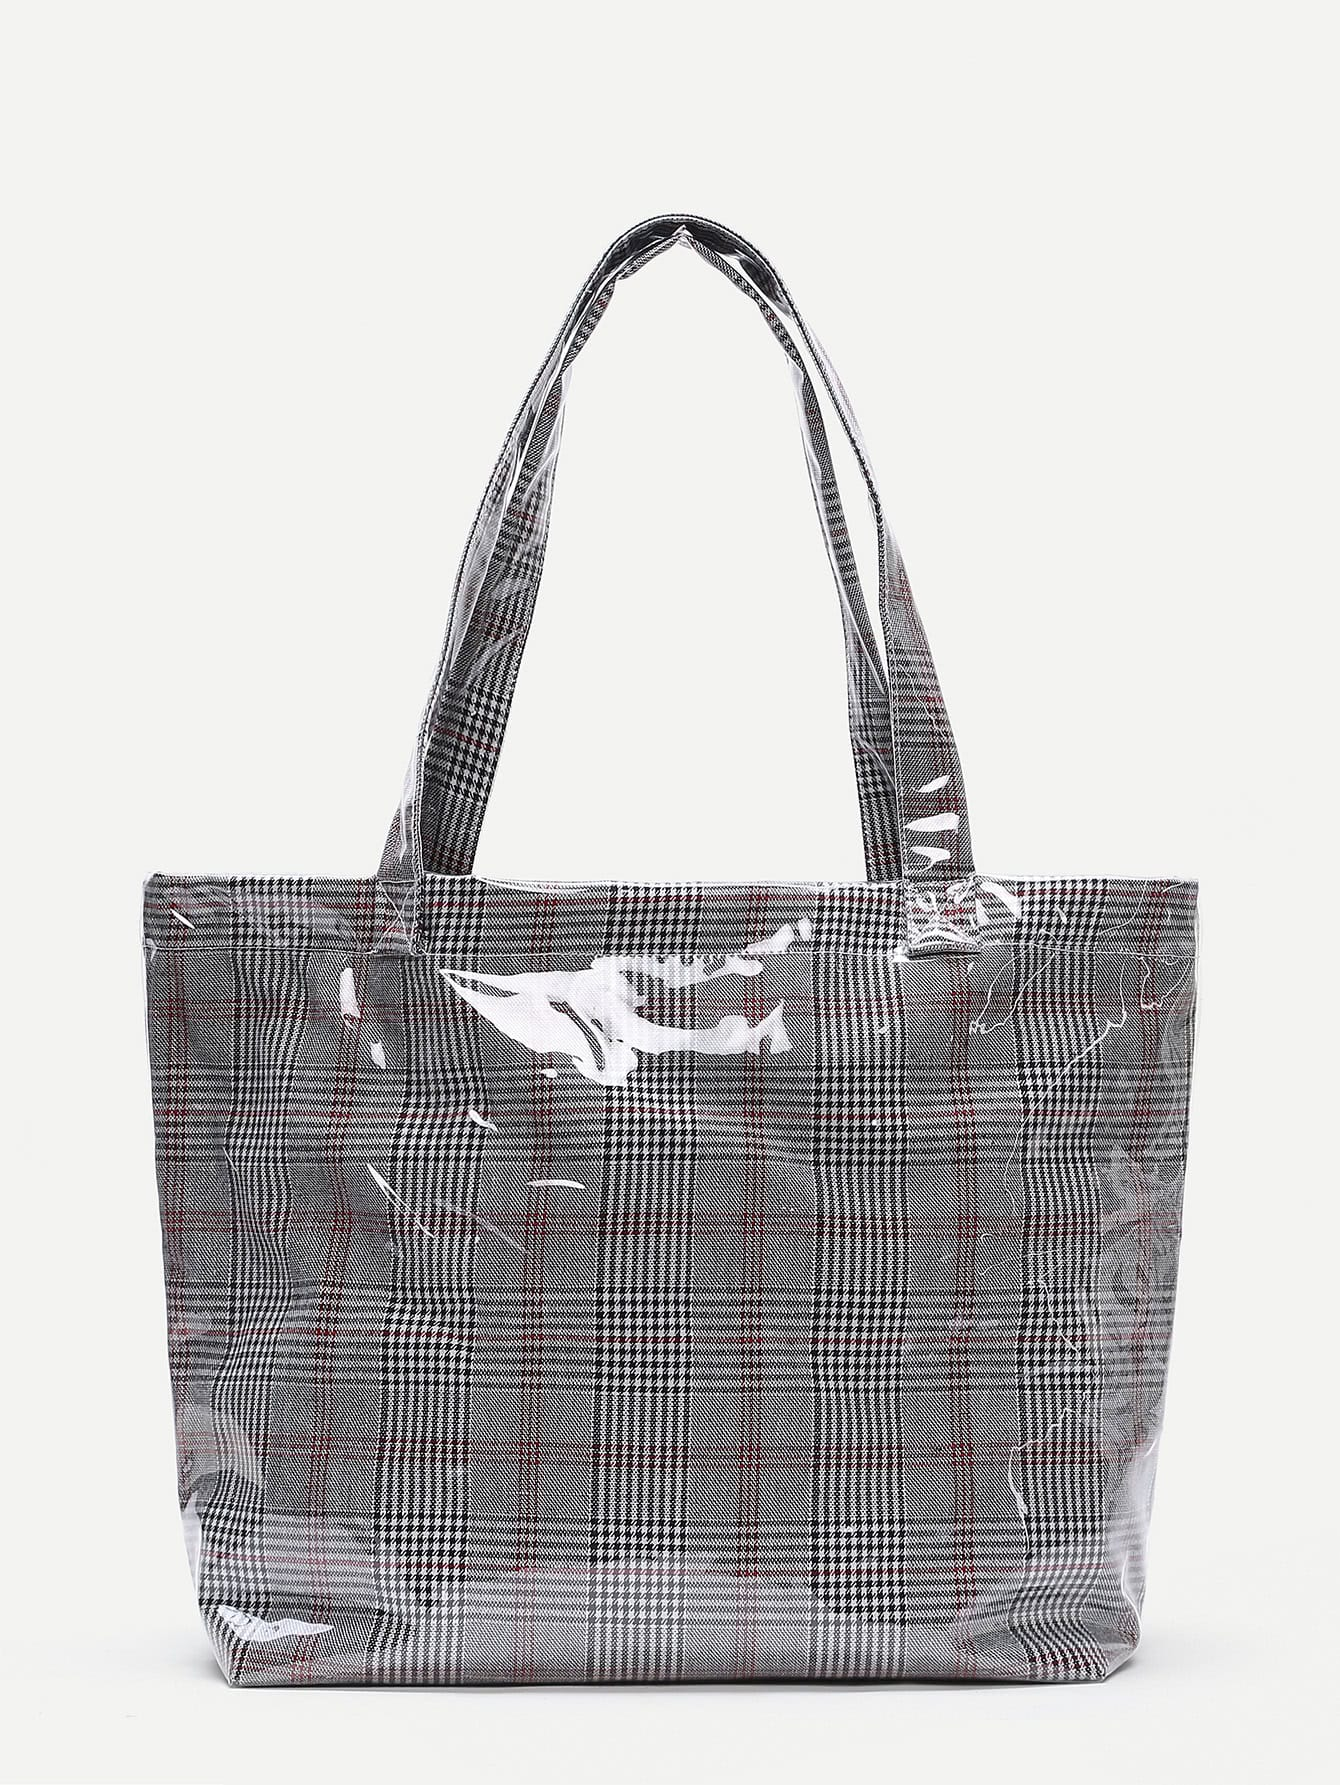 Gingham Print Tote Bag